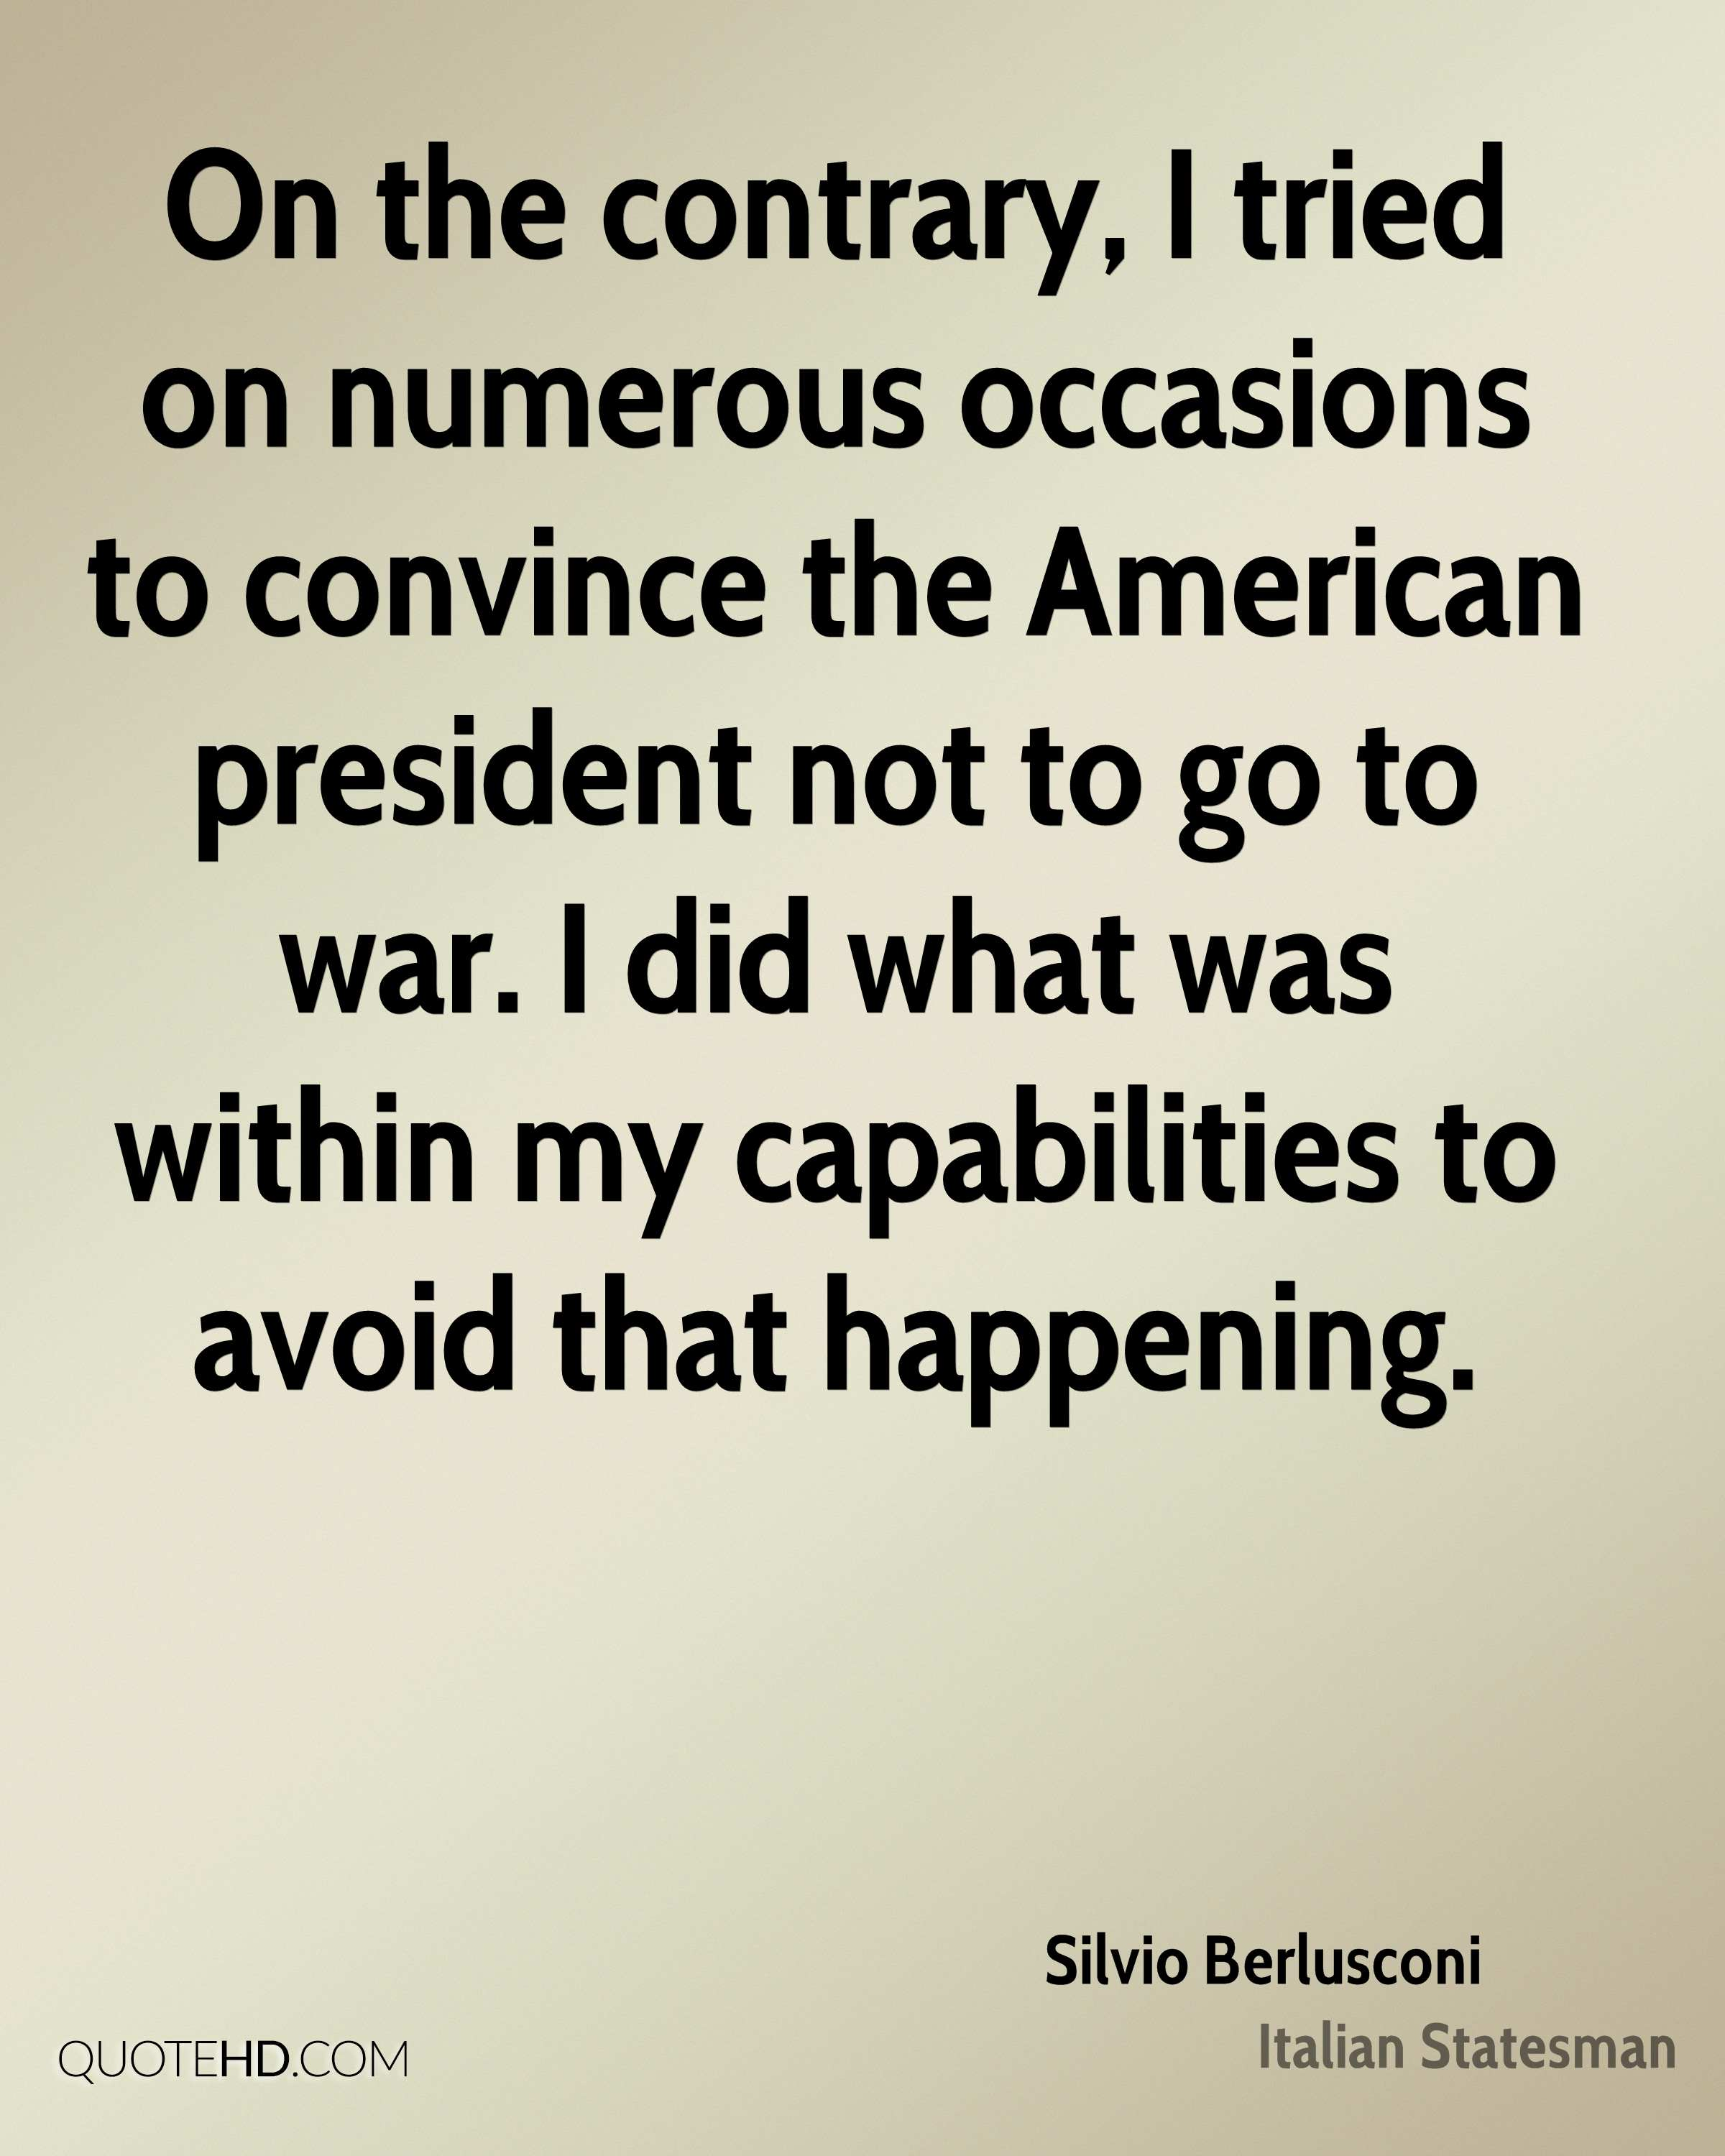 On the contrary, I tried on numerous occasions to convince the American president not to go to war. I did what was within my capabilities to avoid that happening.